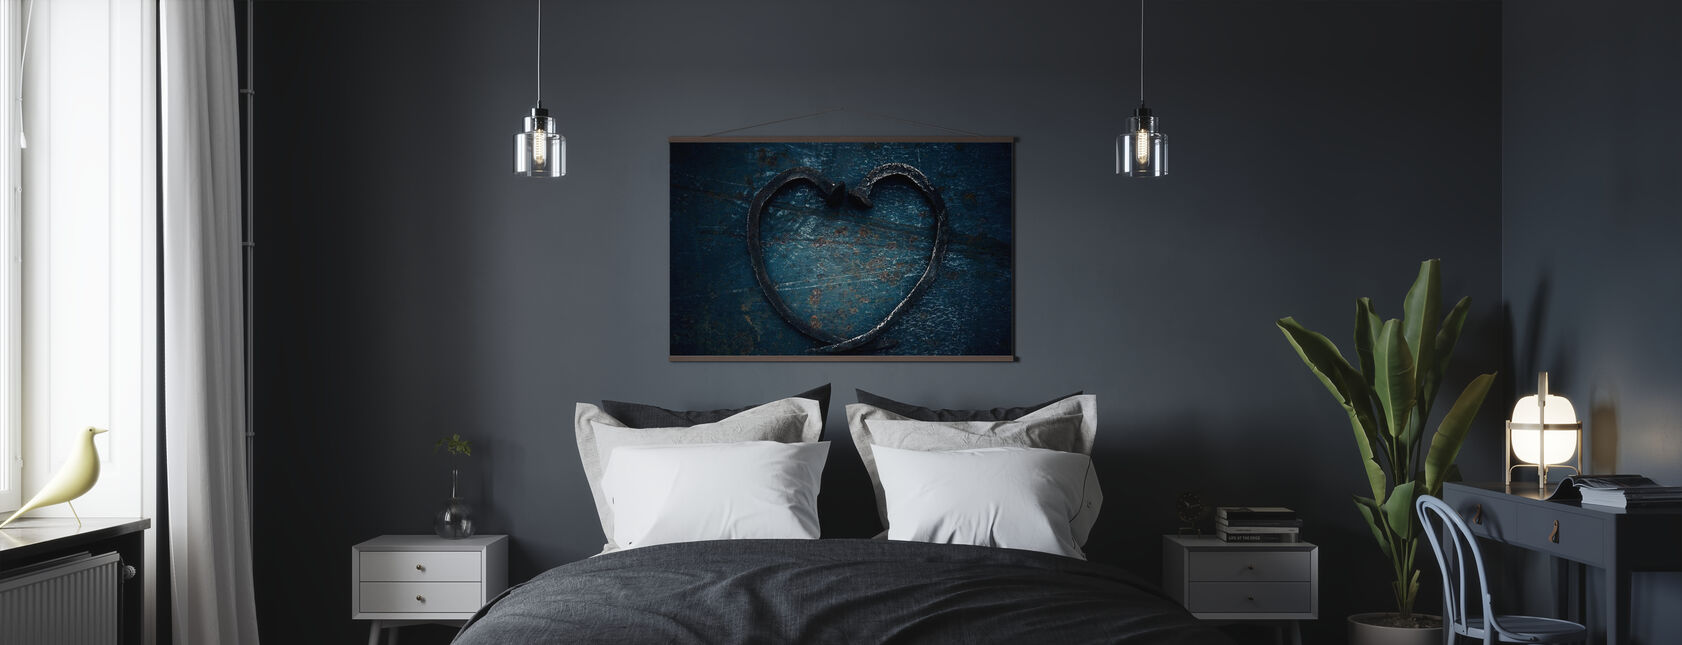 Heart of Nails - Poster - Bedroom